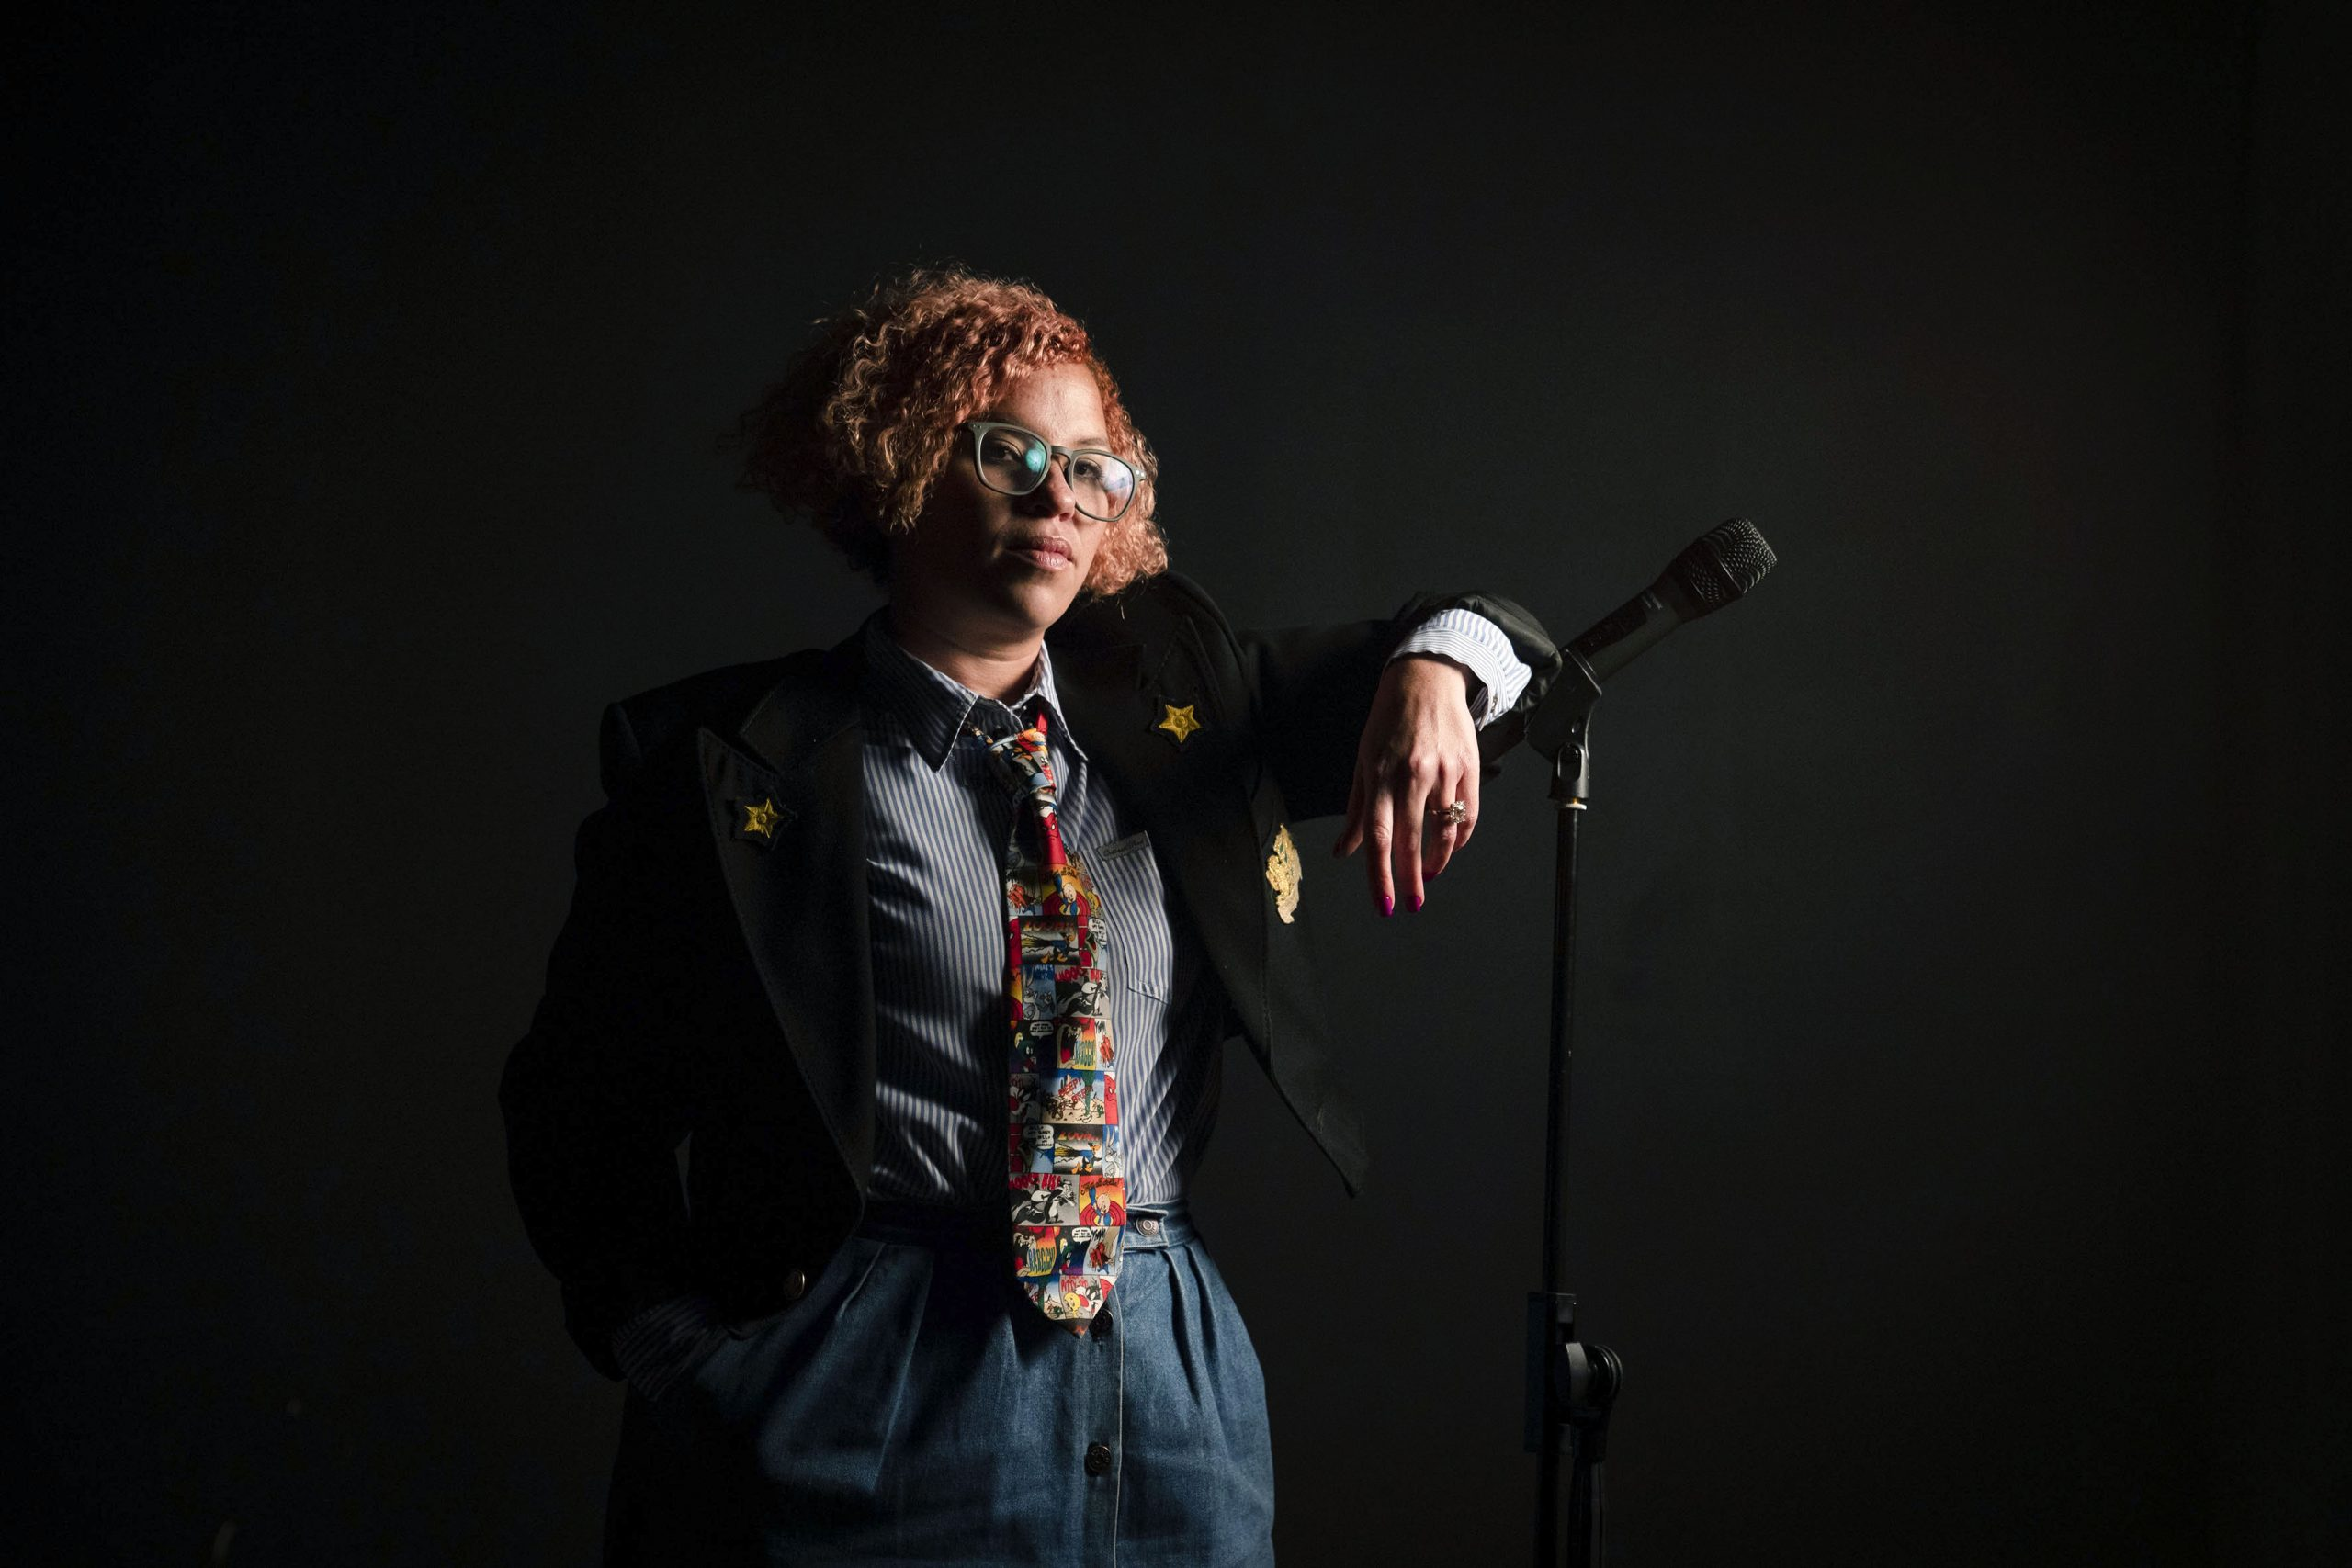 25 June 2019: Managing director Kate Goliath at The Goliath Comedy Club in Melville, Johannesburg, which has been shut since before the ban on social gatherings. (Photograph by Madelene Cronjé)